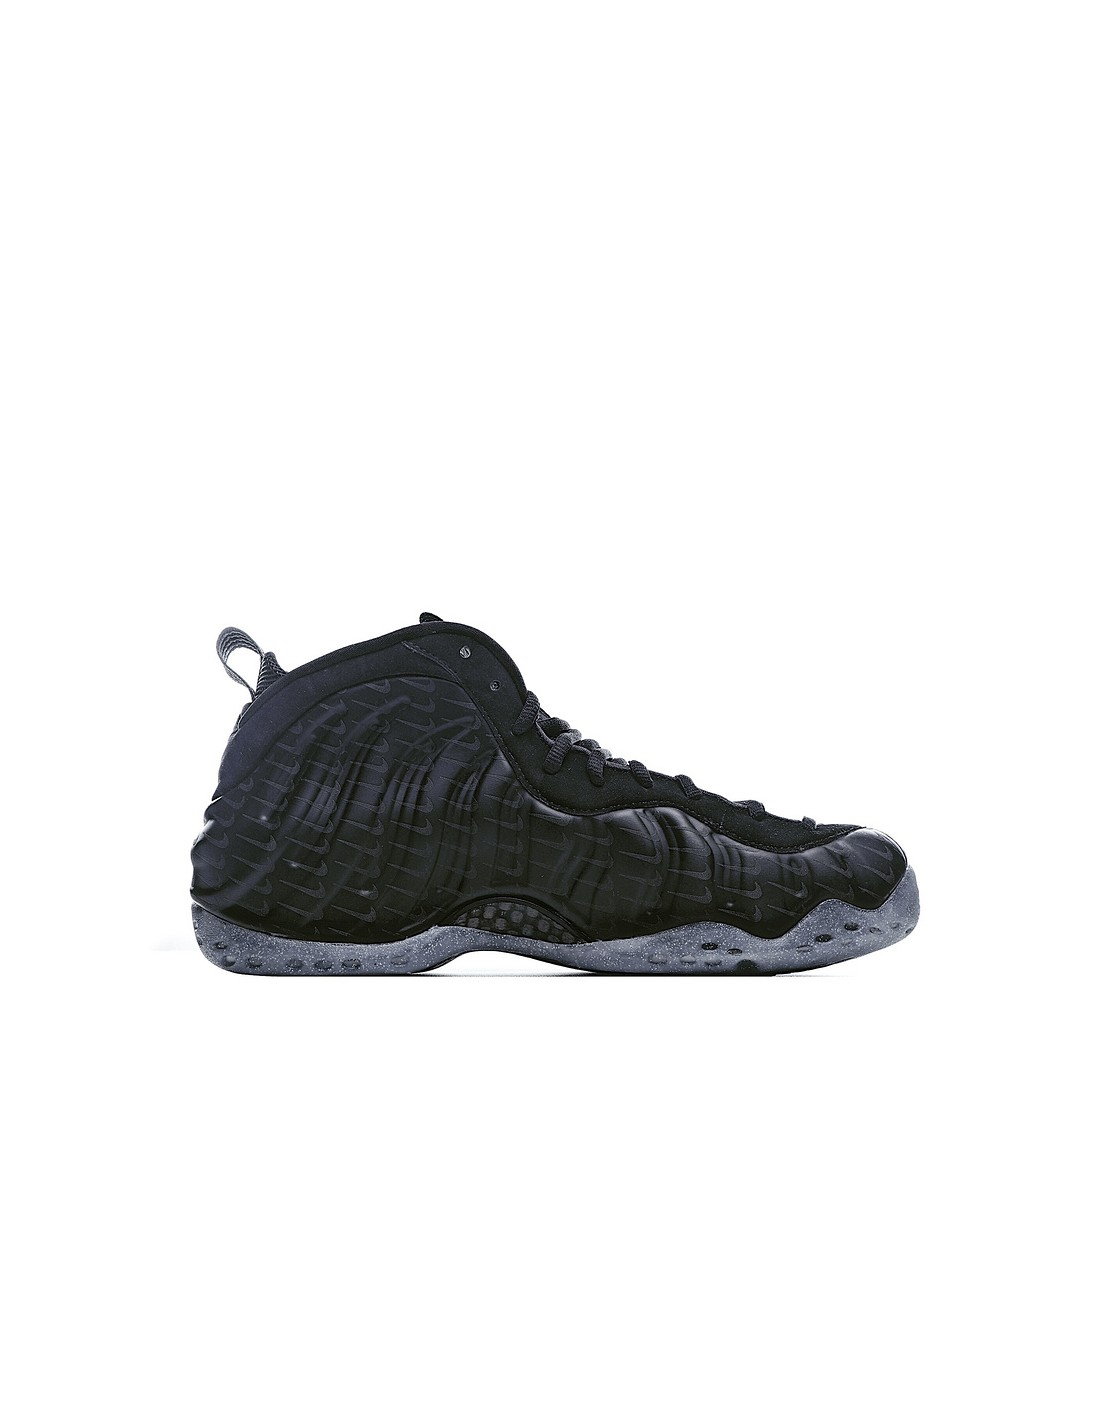 Nike Air Foamposite One Nike NewsHistoric Chester PA